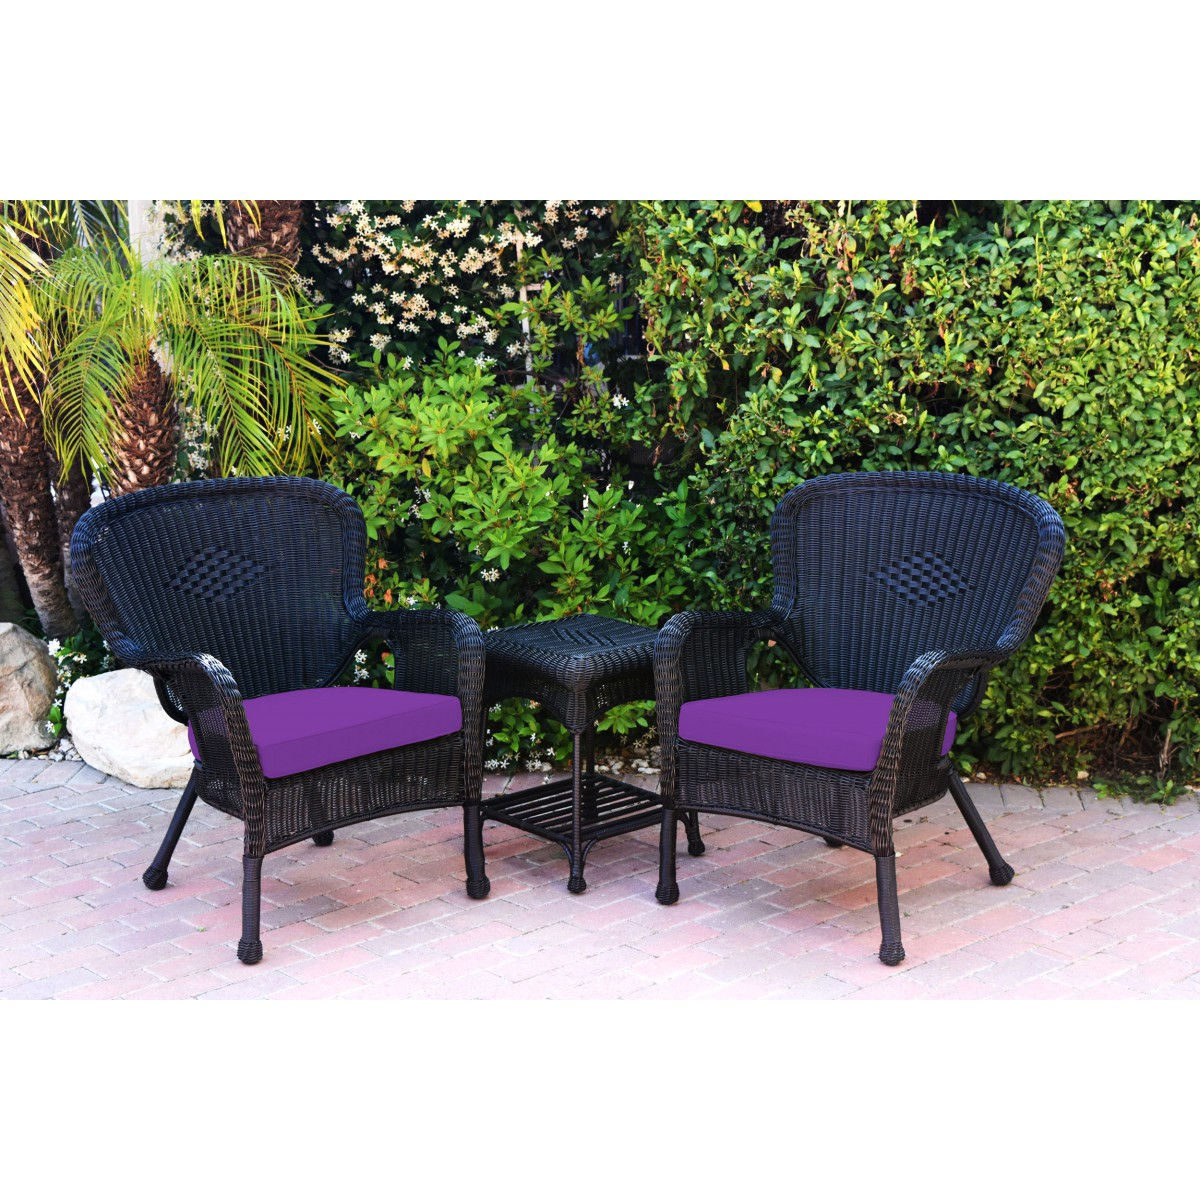 Windsor Black Wicker Chair And End Table Set With Purple Chair